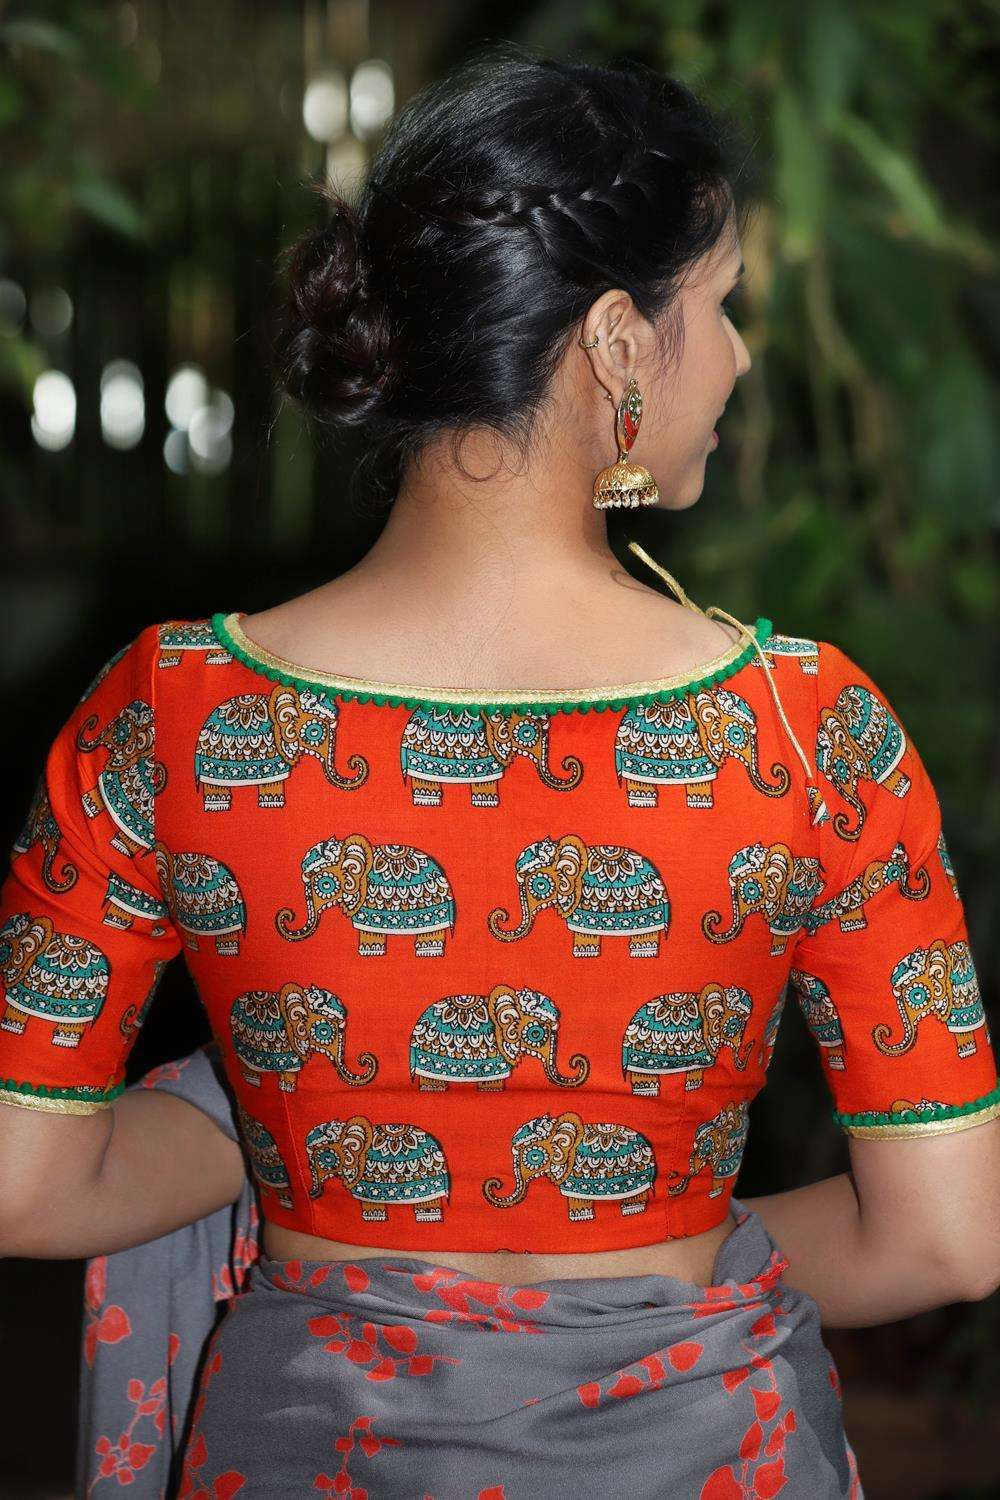 Orange rayon boatneck blouse with printed Kalamkari elephant motifs and border detailing